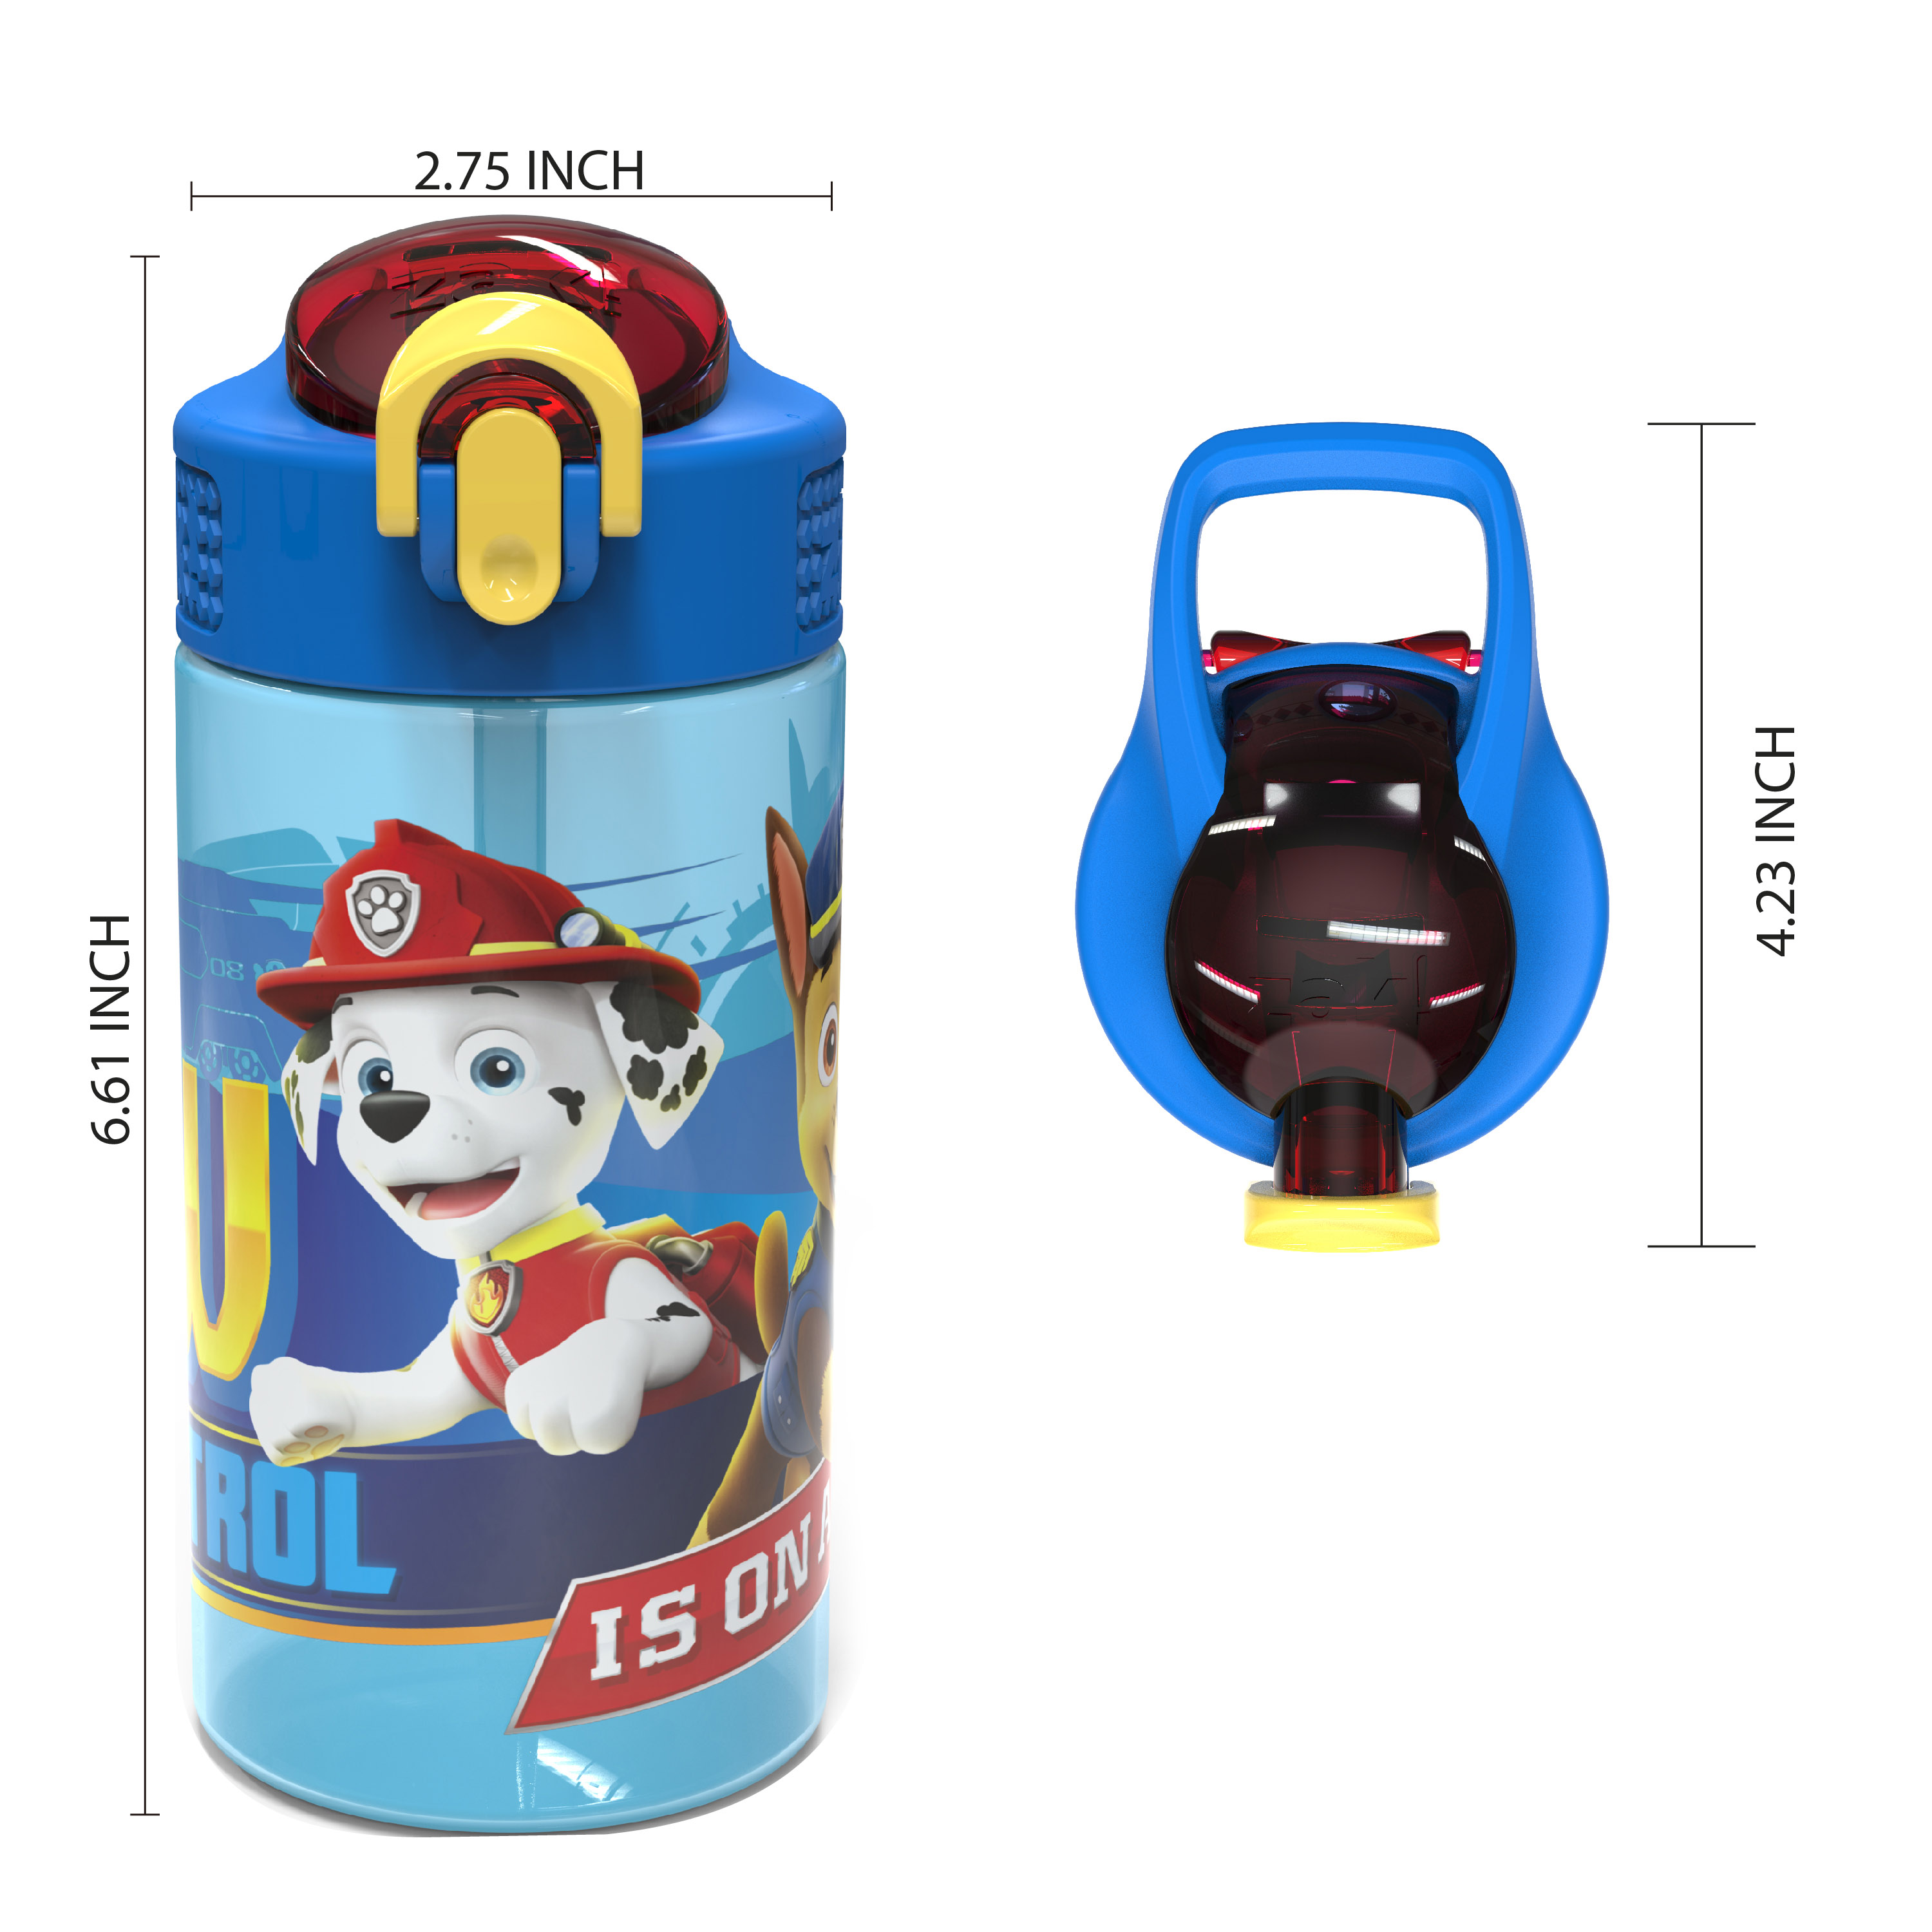 Paw Patrol 16 ounce Reusable Plastic Water Bottle with Straw, Marshall, 2-piece set slideshow image 8